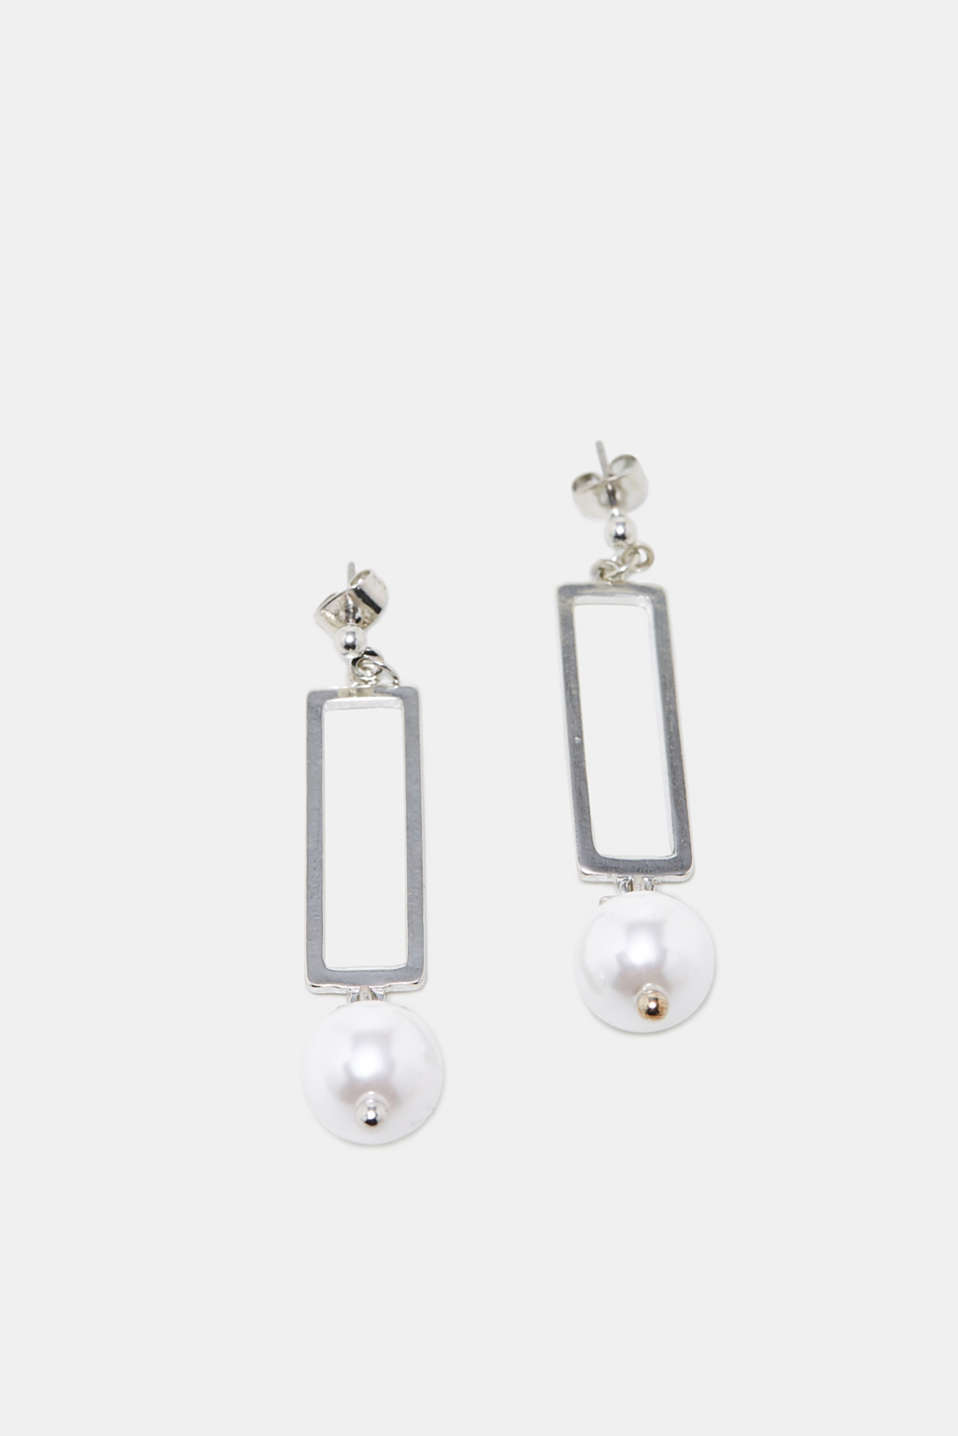 Esprit - Metal earrings with a bead